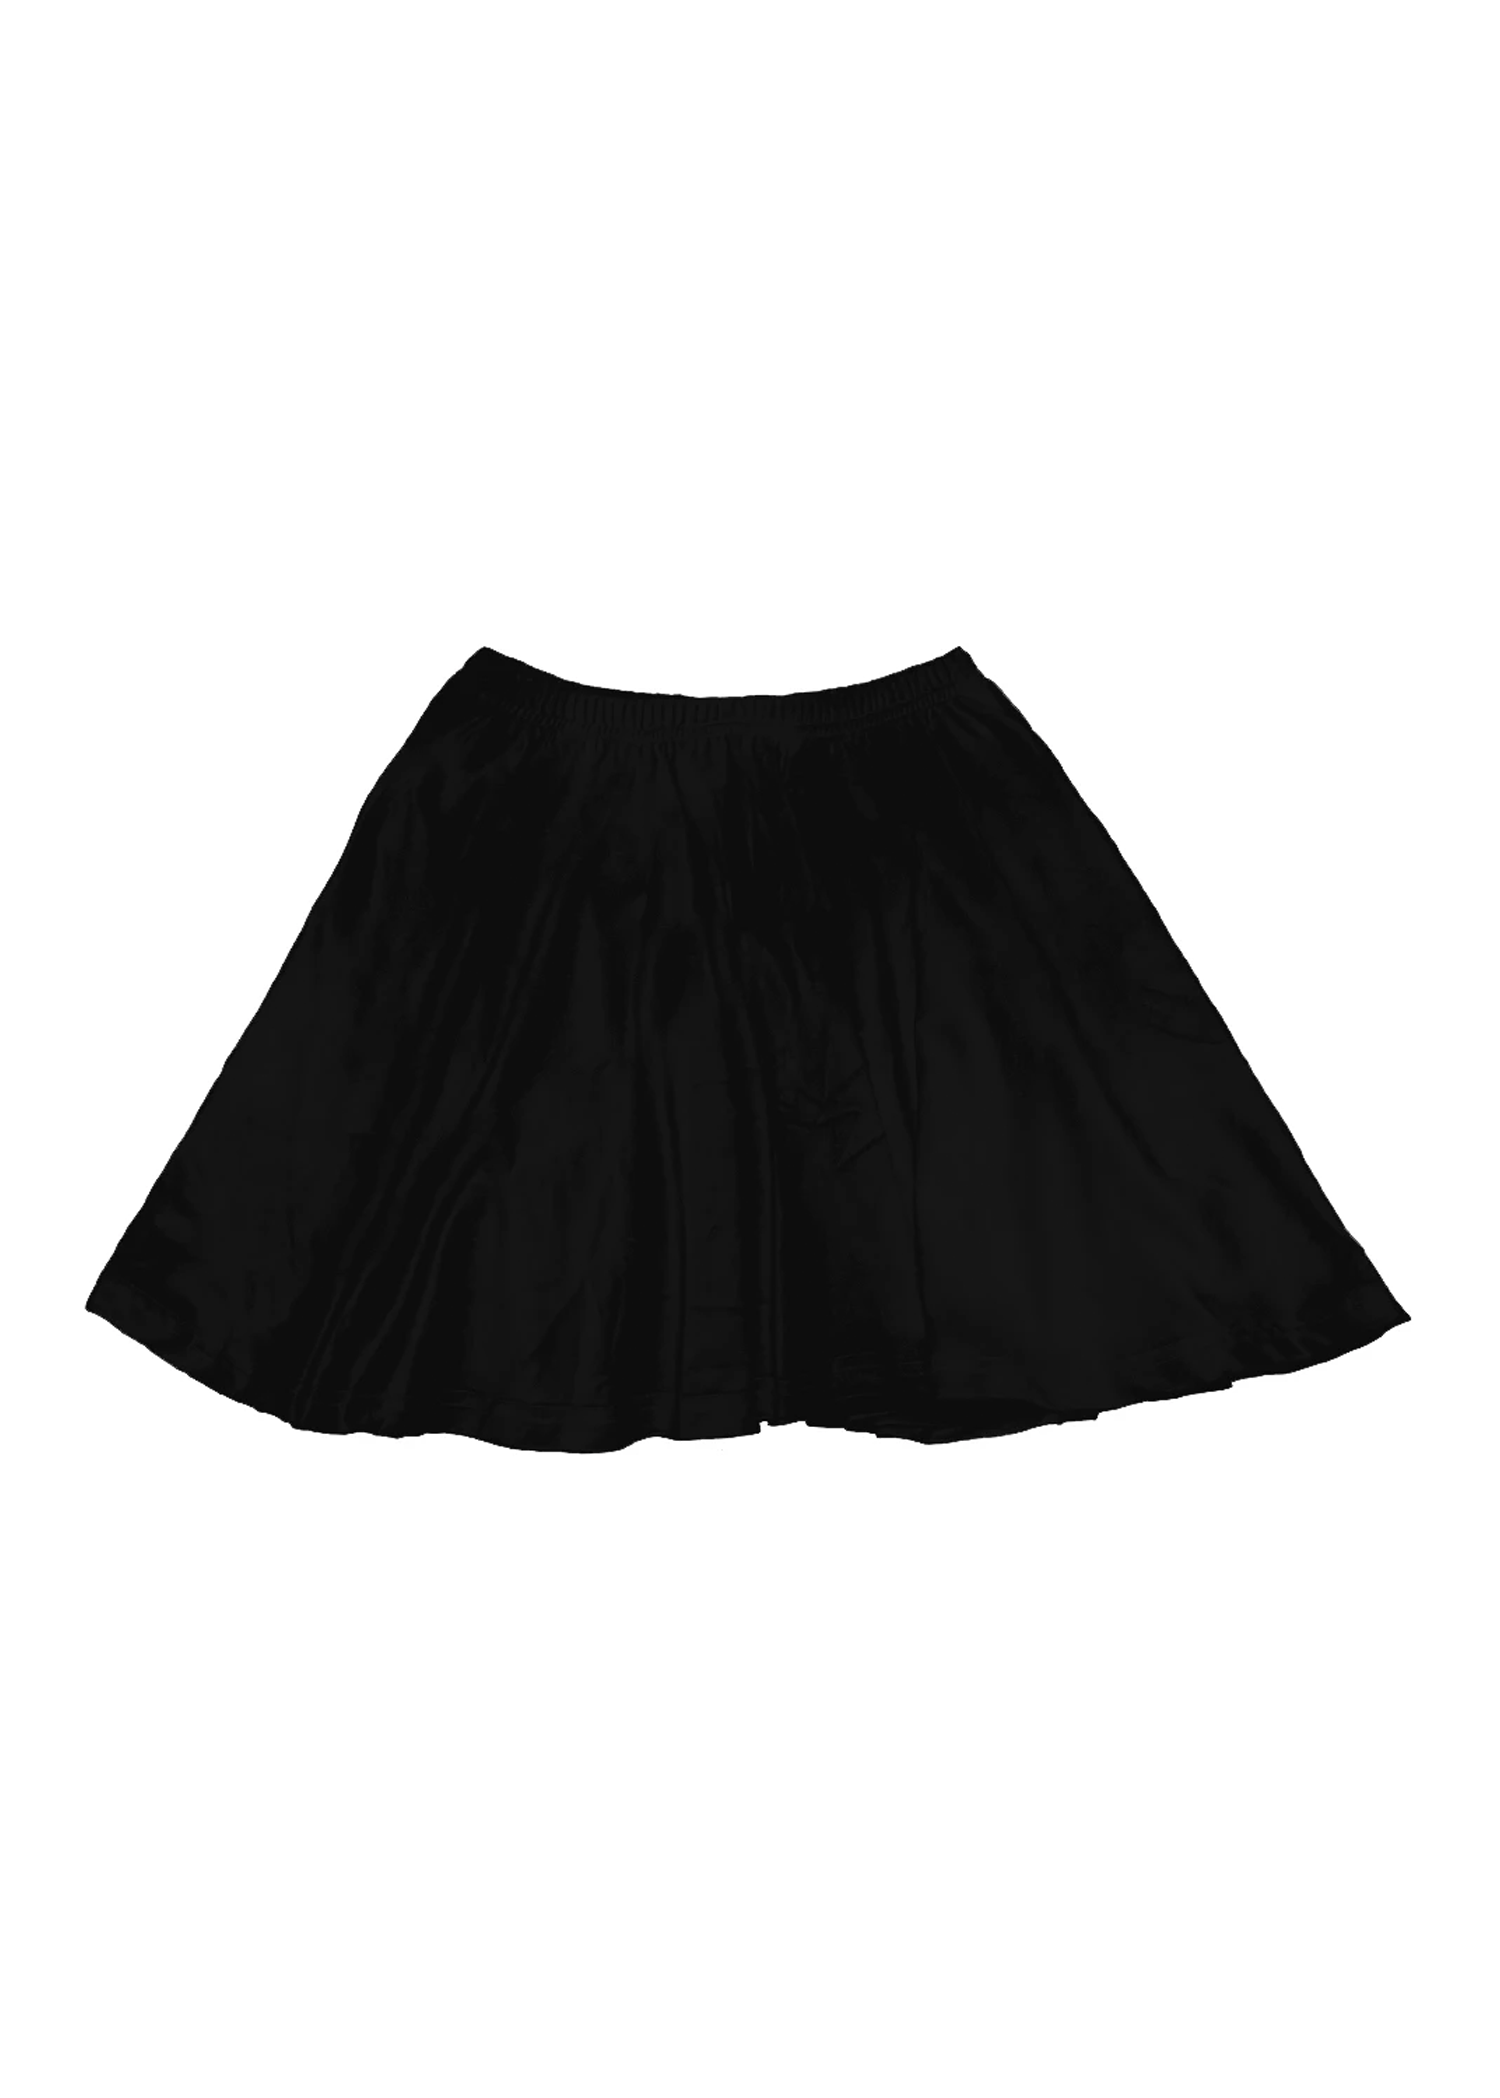 velvet skater skirt in black